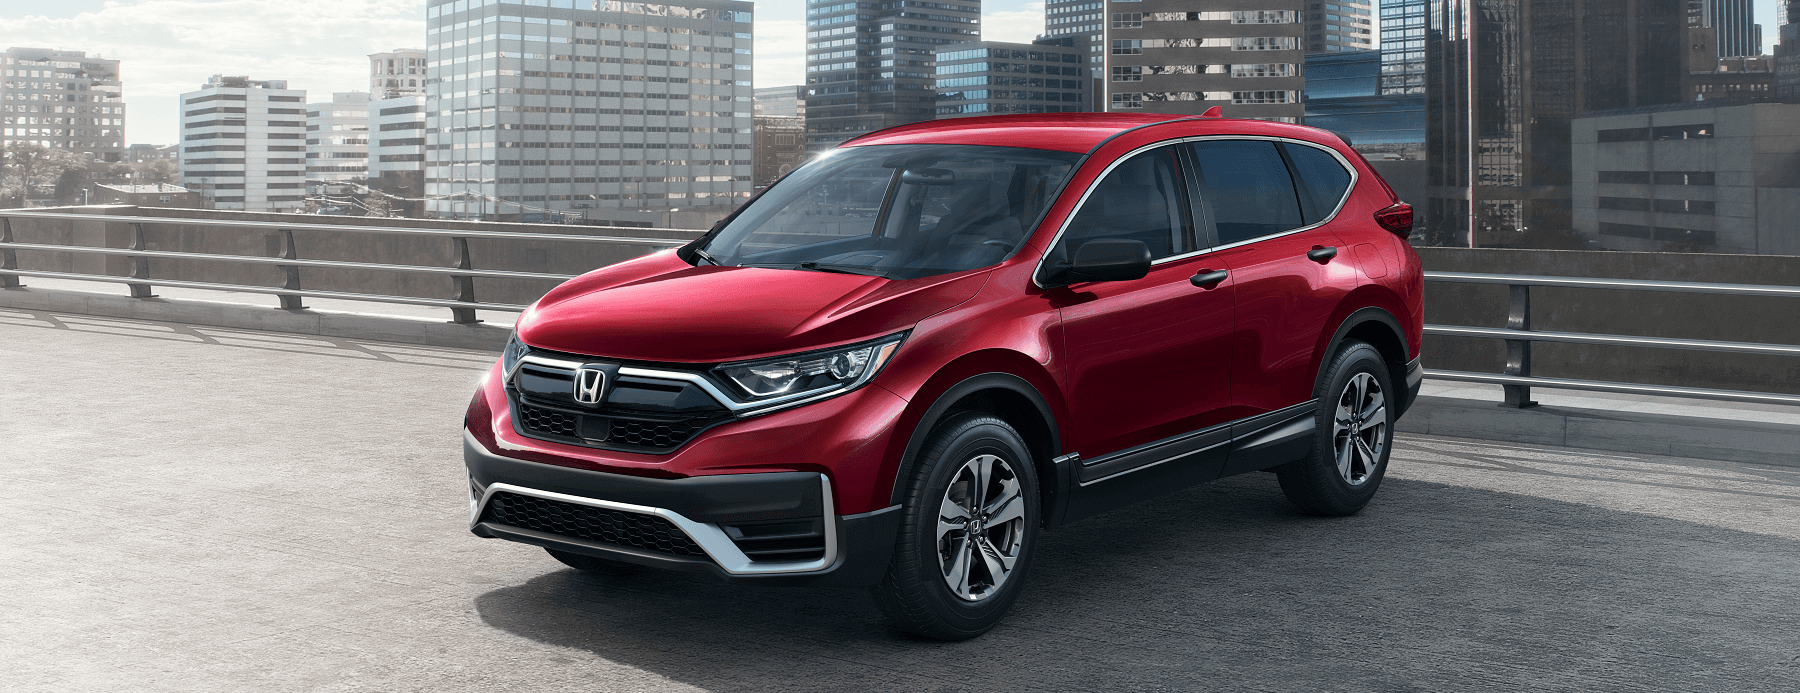 Honda CR-V safety features